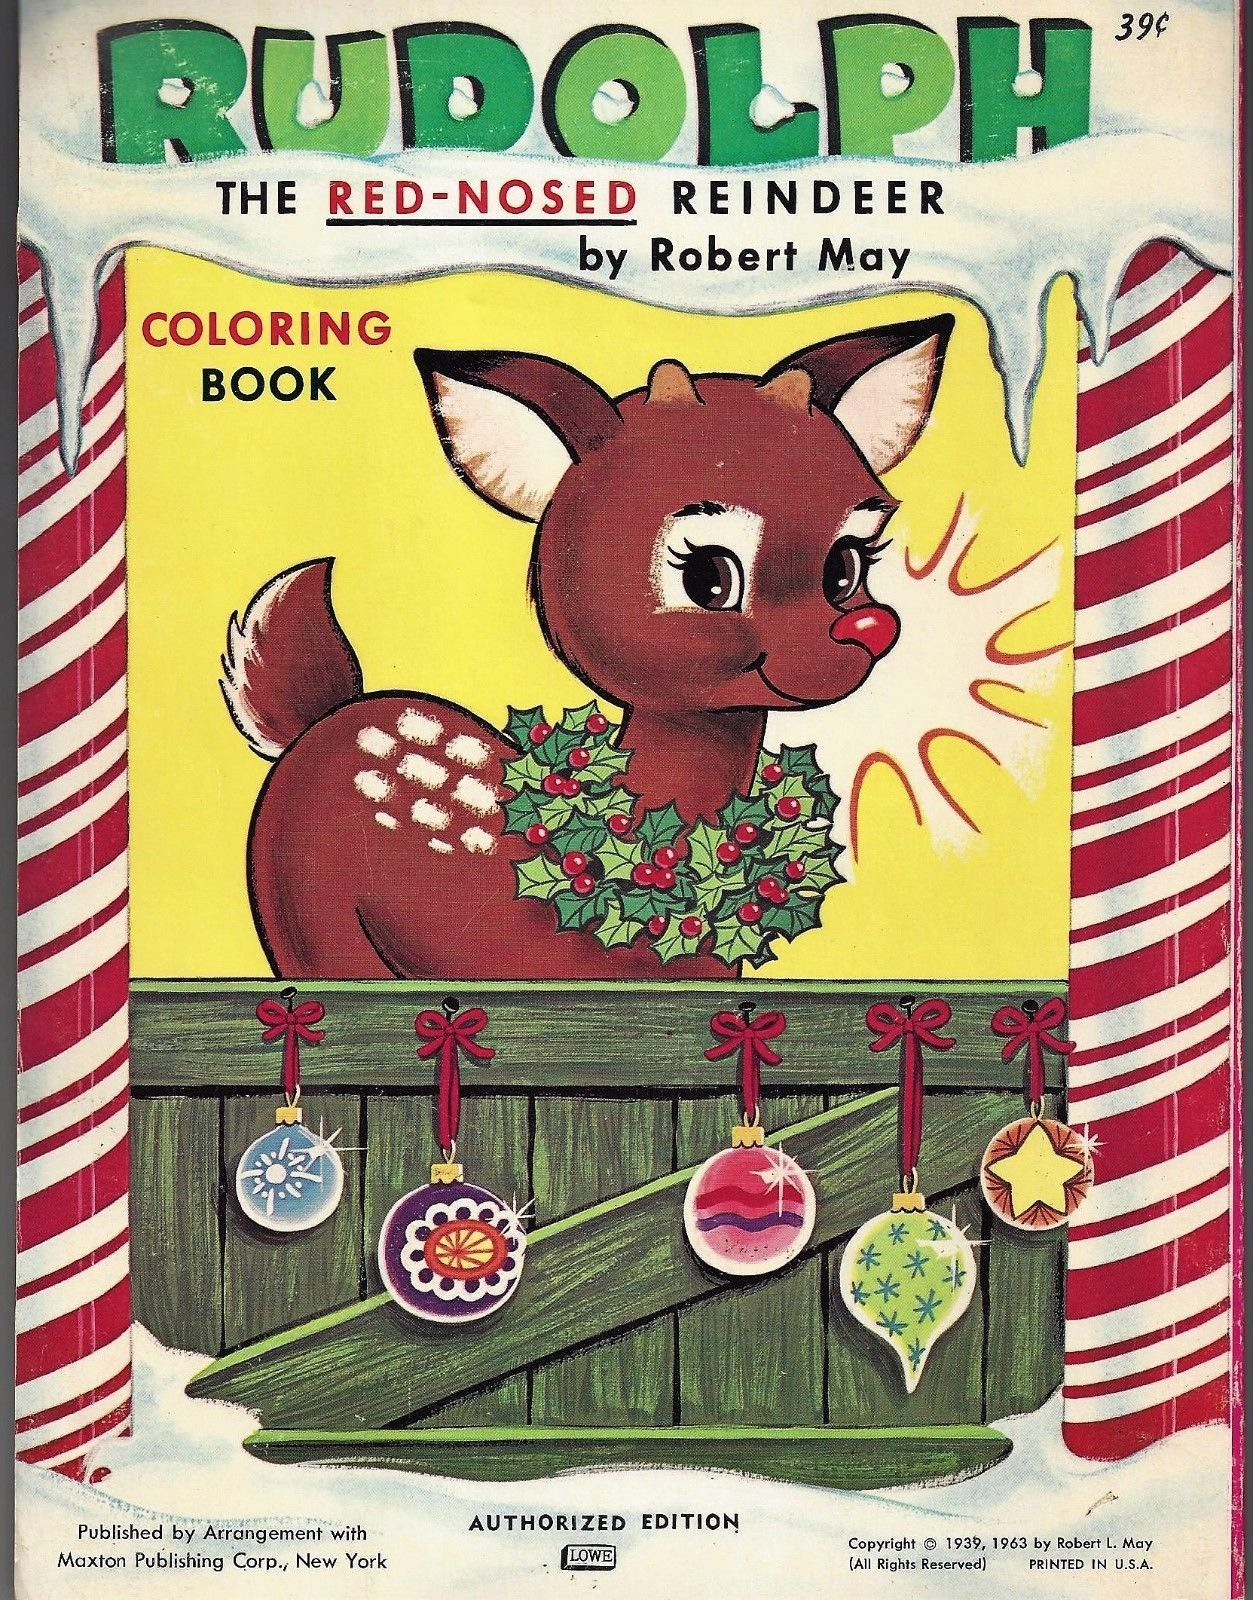 Vintage Rudolph The Red Nosed Reindeer Coloring Book 1963 Unused For Sale 9 99 See Photos Money Back Guarantee Up For Auction Is A Malarbocker Julbocker